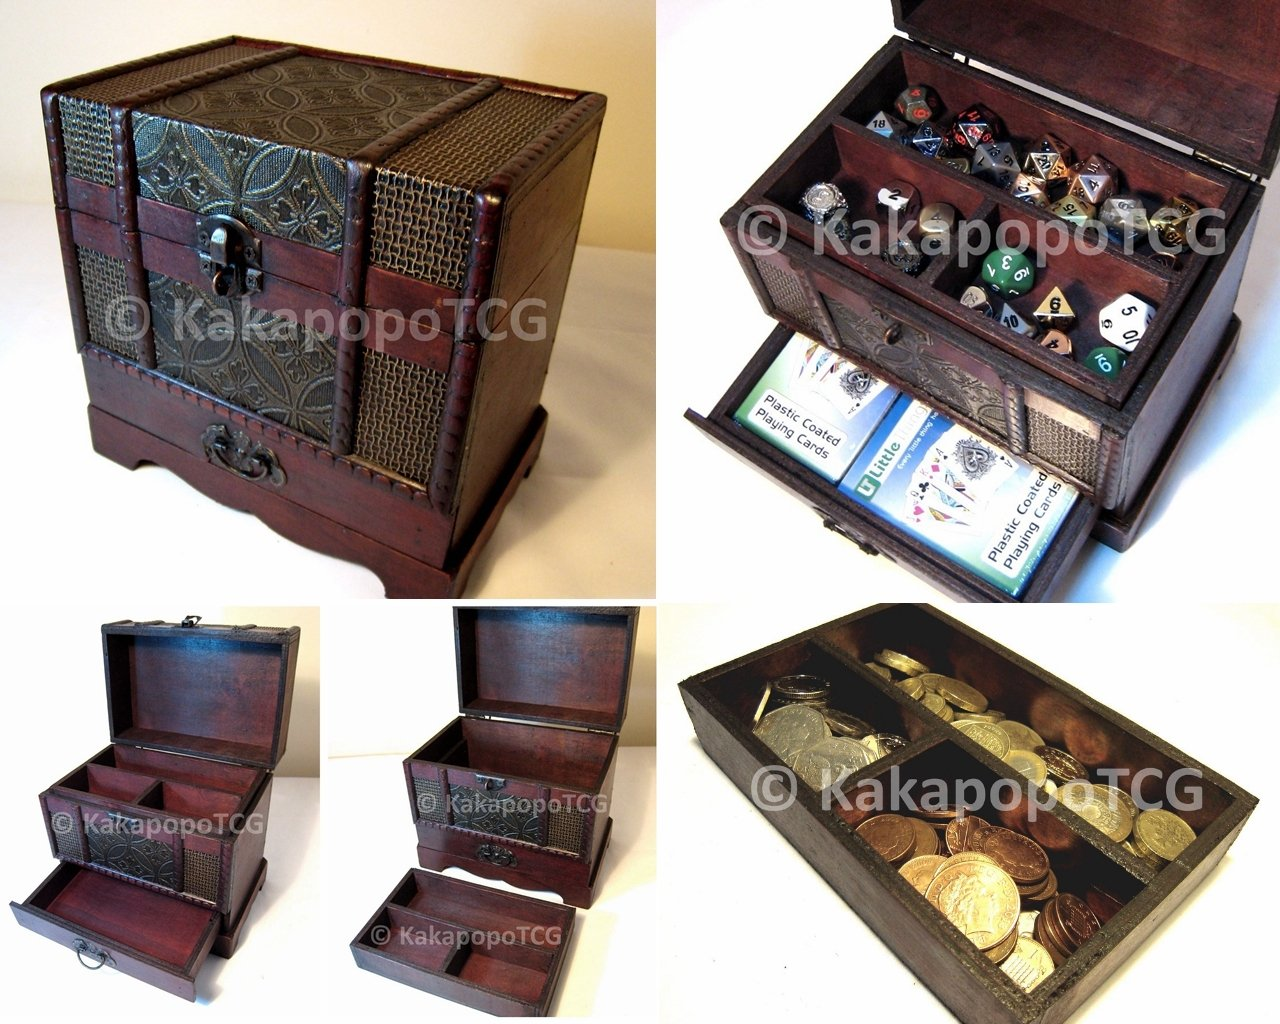 KakapopoTCG C2 Wooden Chest with Drawer for Collectible Fantasy Coins Card Games Dice Counter Deck of Cards Table Top Role Playing Jewelry Box Tabletop DND by KakapopoTCG